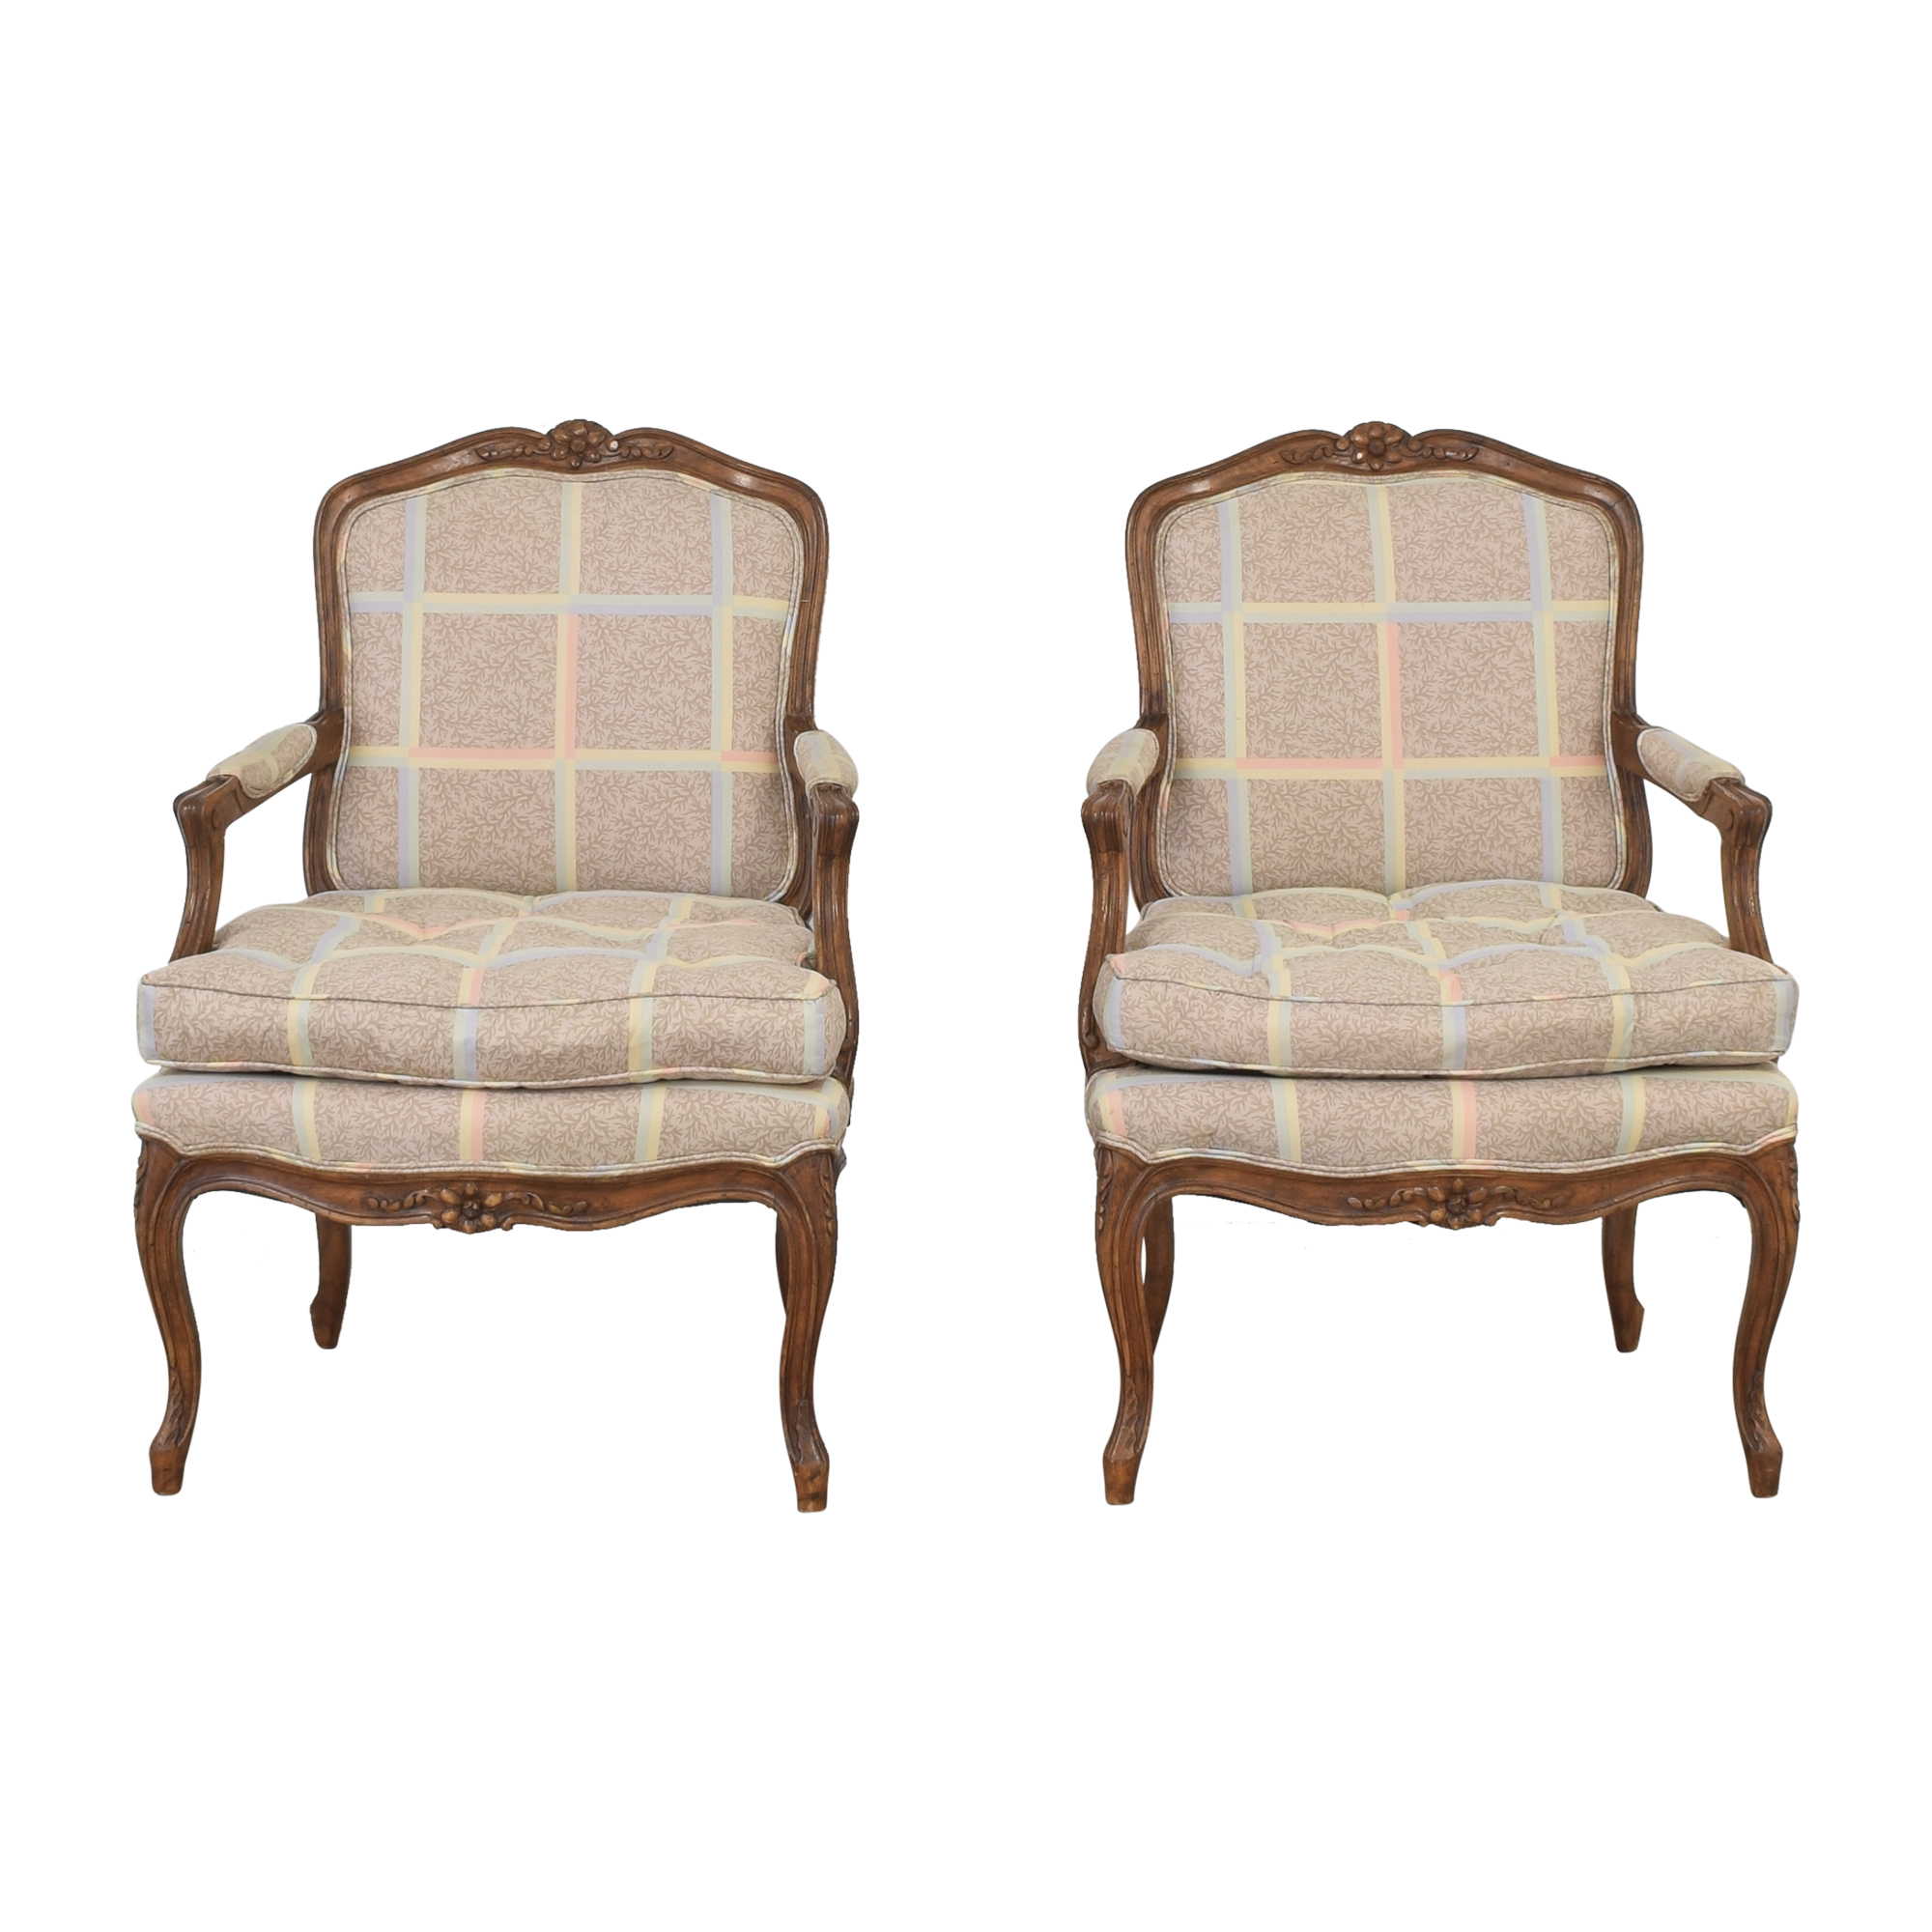 Upholstered Accent Chairs second hand